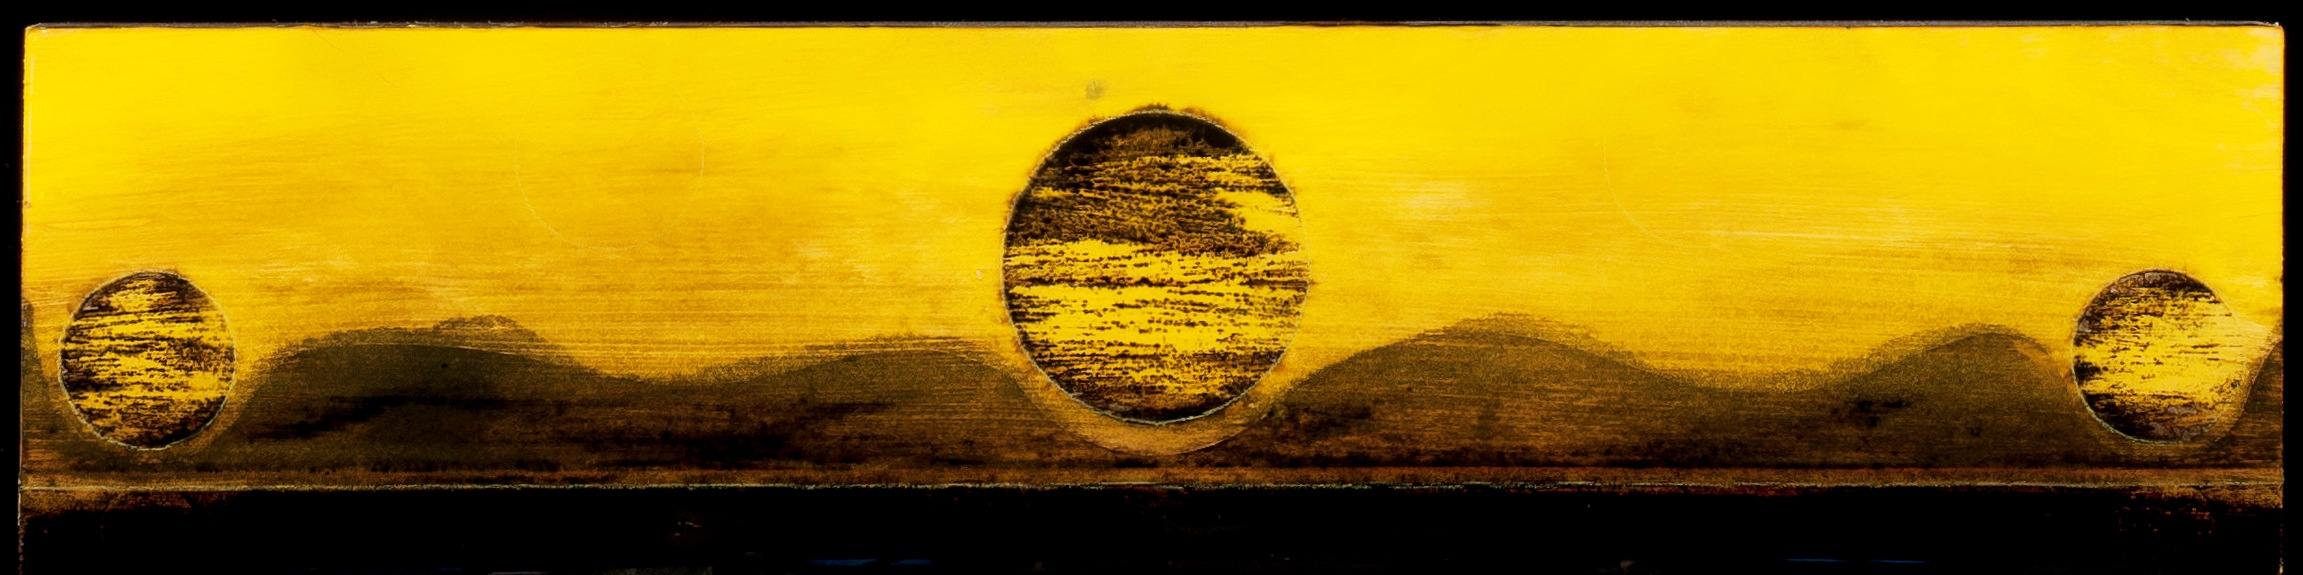 Marco Logsdon. Tar Landscape with Chartreuse Sky (3 Moons). Oil, Tar and Resin o